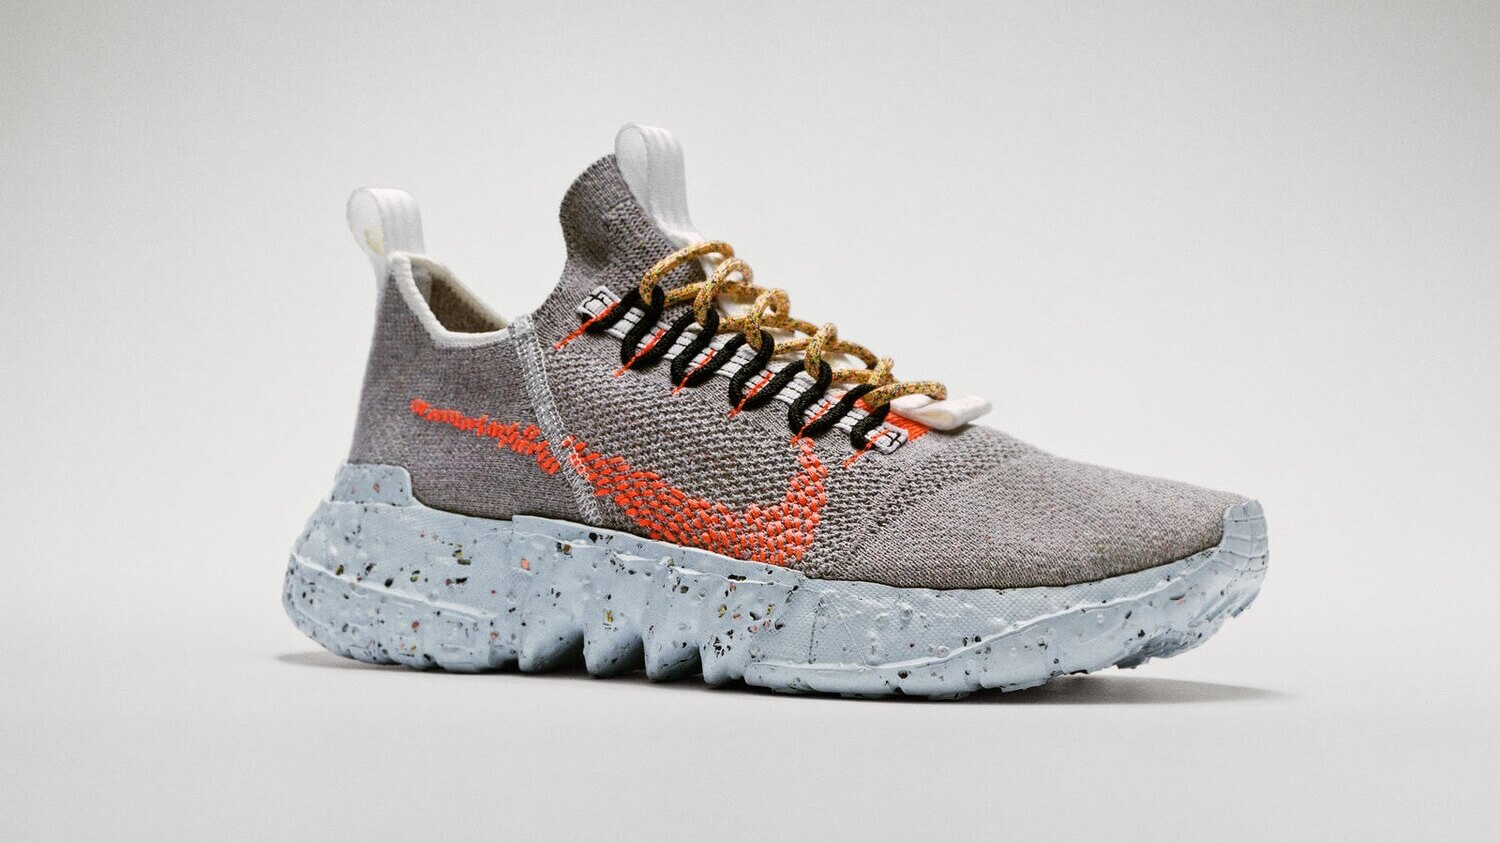 Nike's New Vegan 'Space Hippie' Sneakers Are Made From Trash